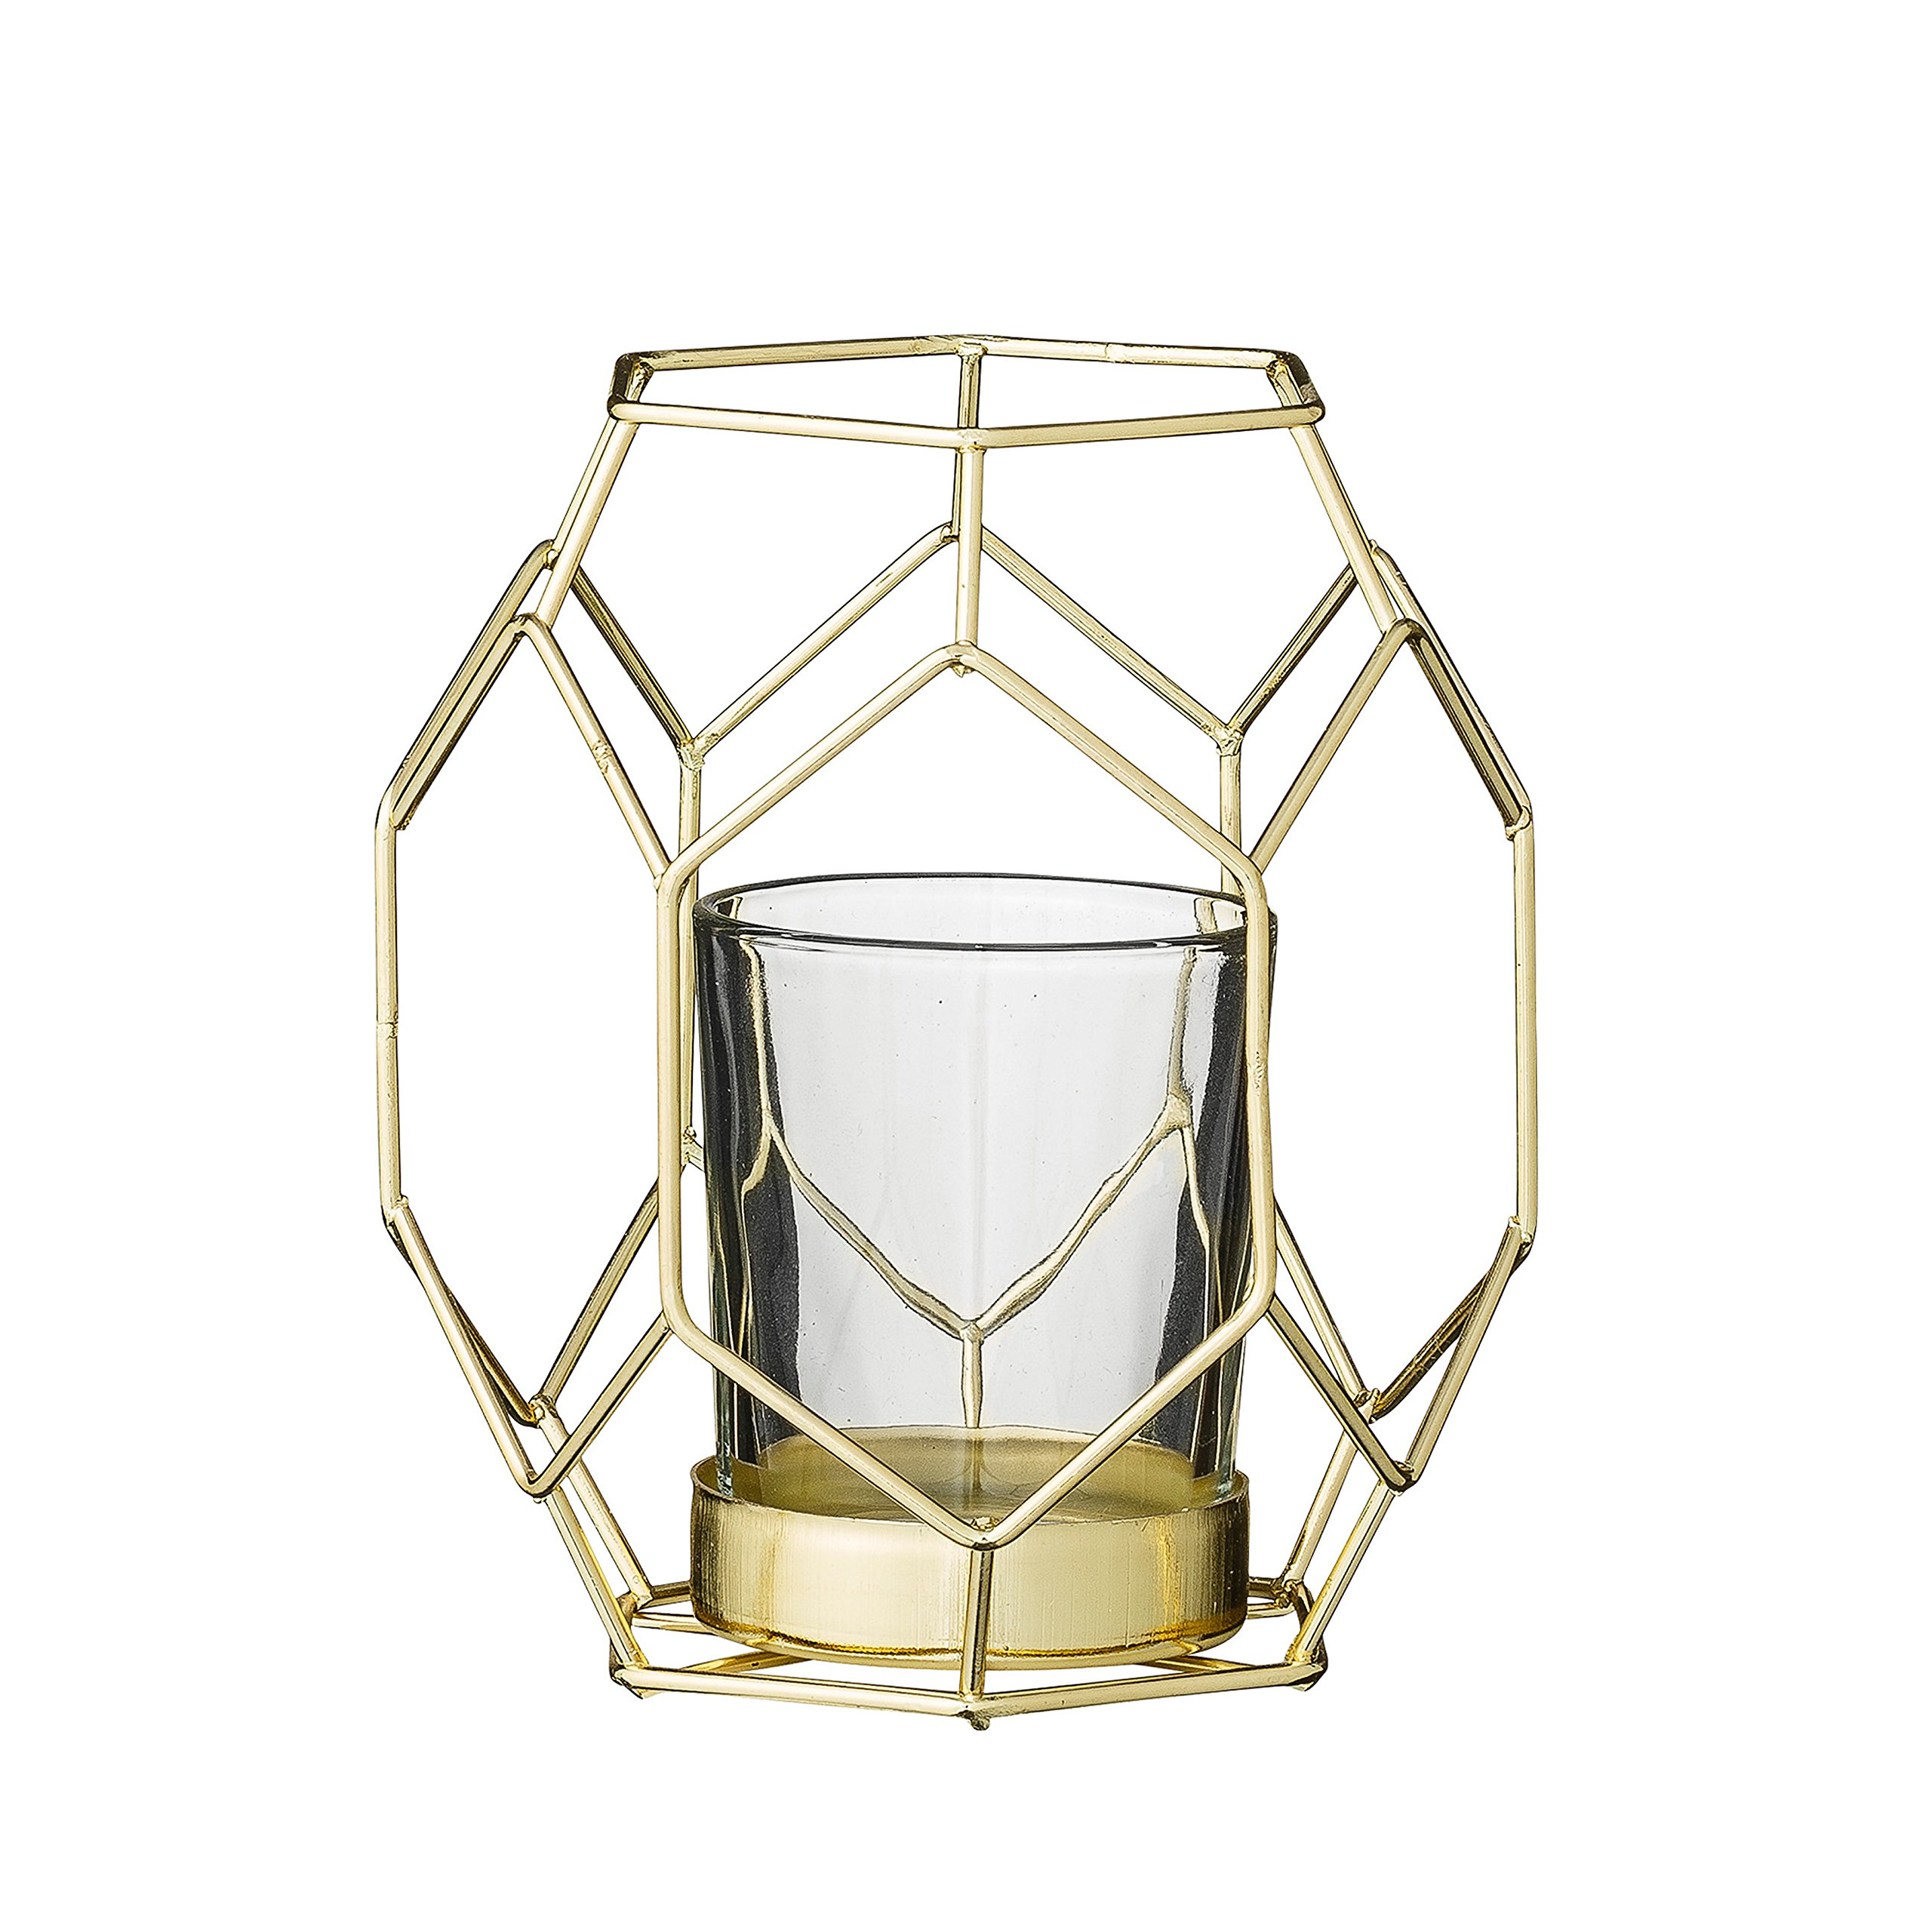 Bloomingville A27400058 Small Gold Metal Geometric Votive Holder with Glass Insert